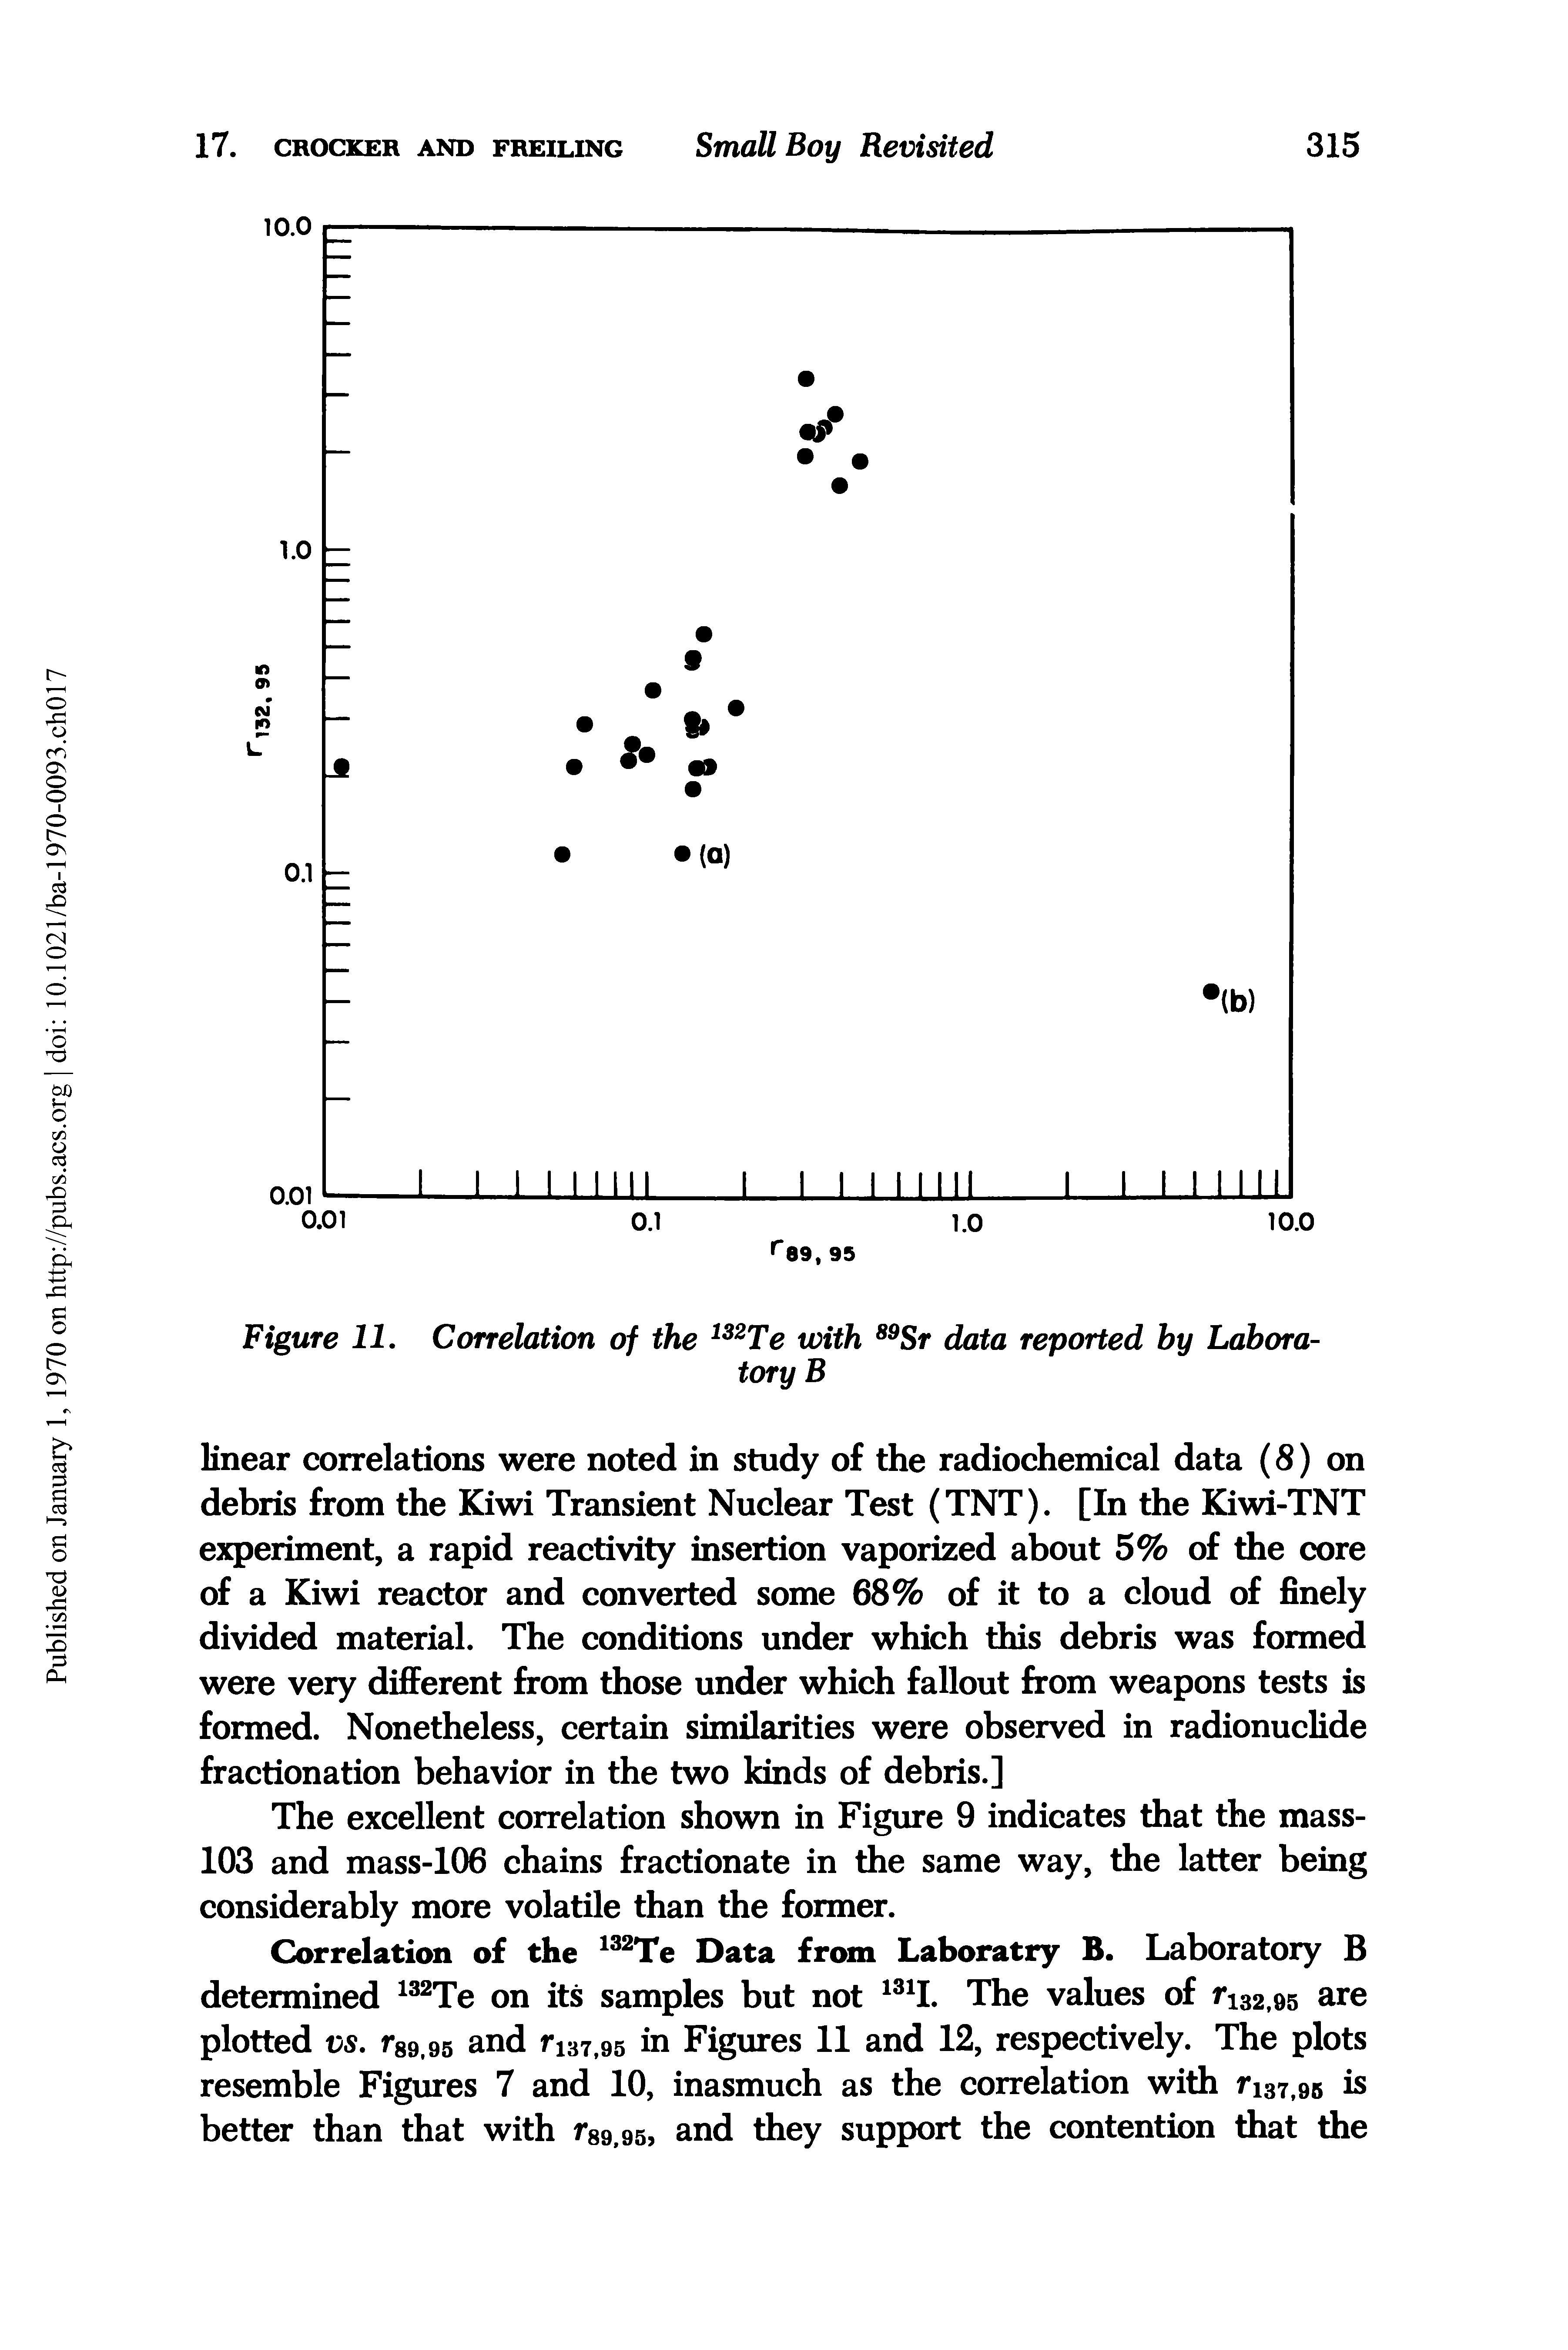 "Figure 11. Correlation of the 132Te with 89Sr <a href=""/info/reporting_of_data"">data reported</a> by Laboratory B"